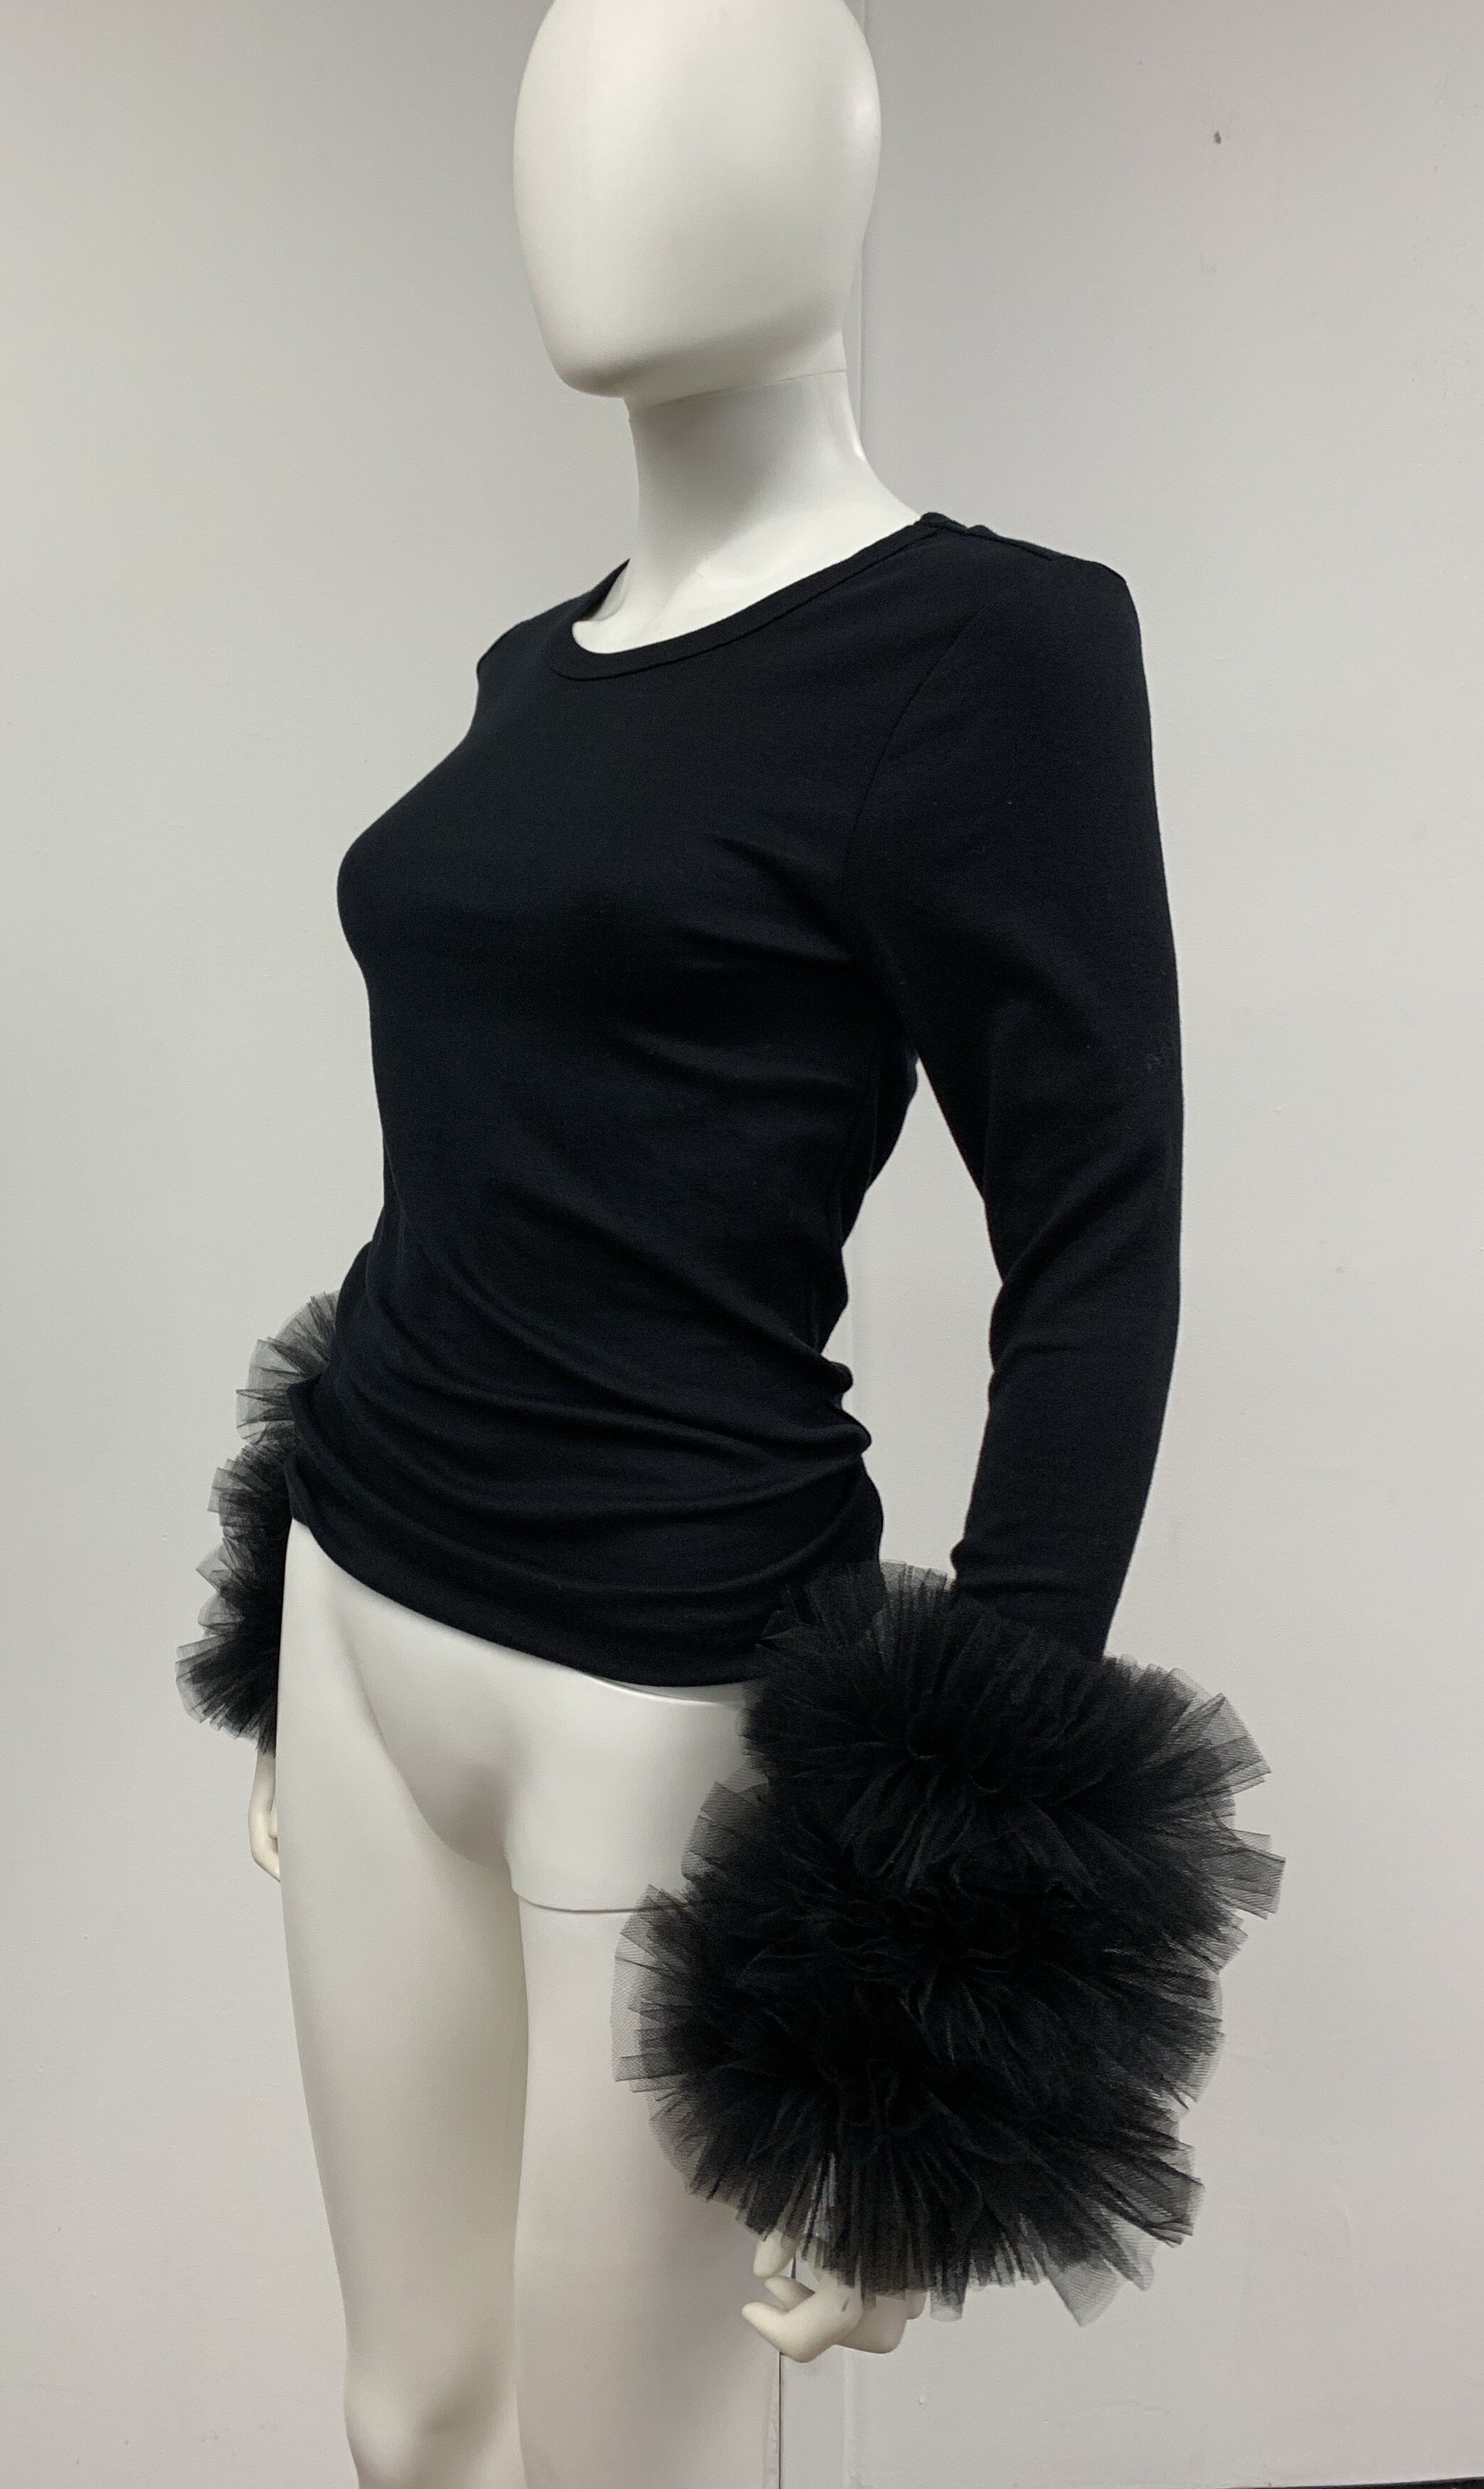 Tulle Cuff Long Sleeve Knit Top available in black and white